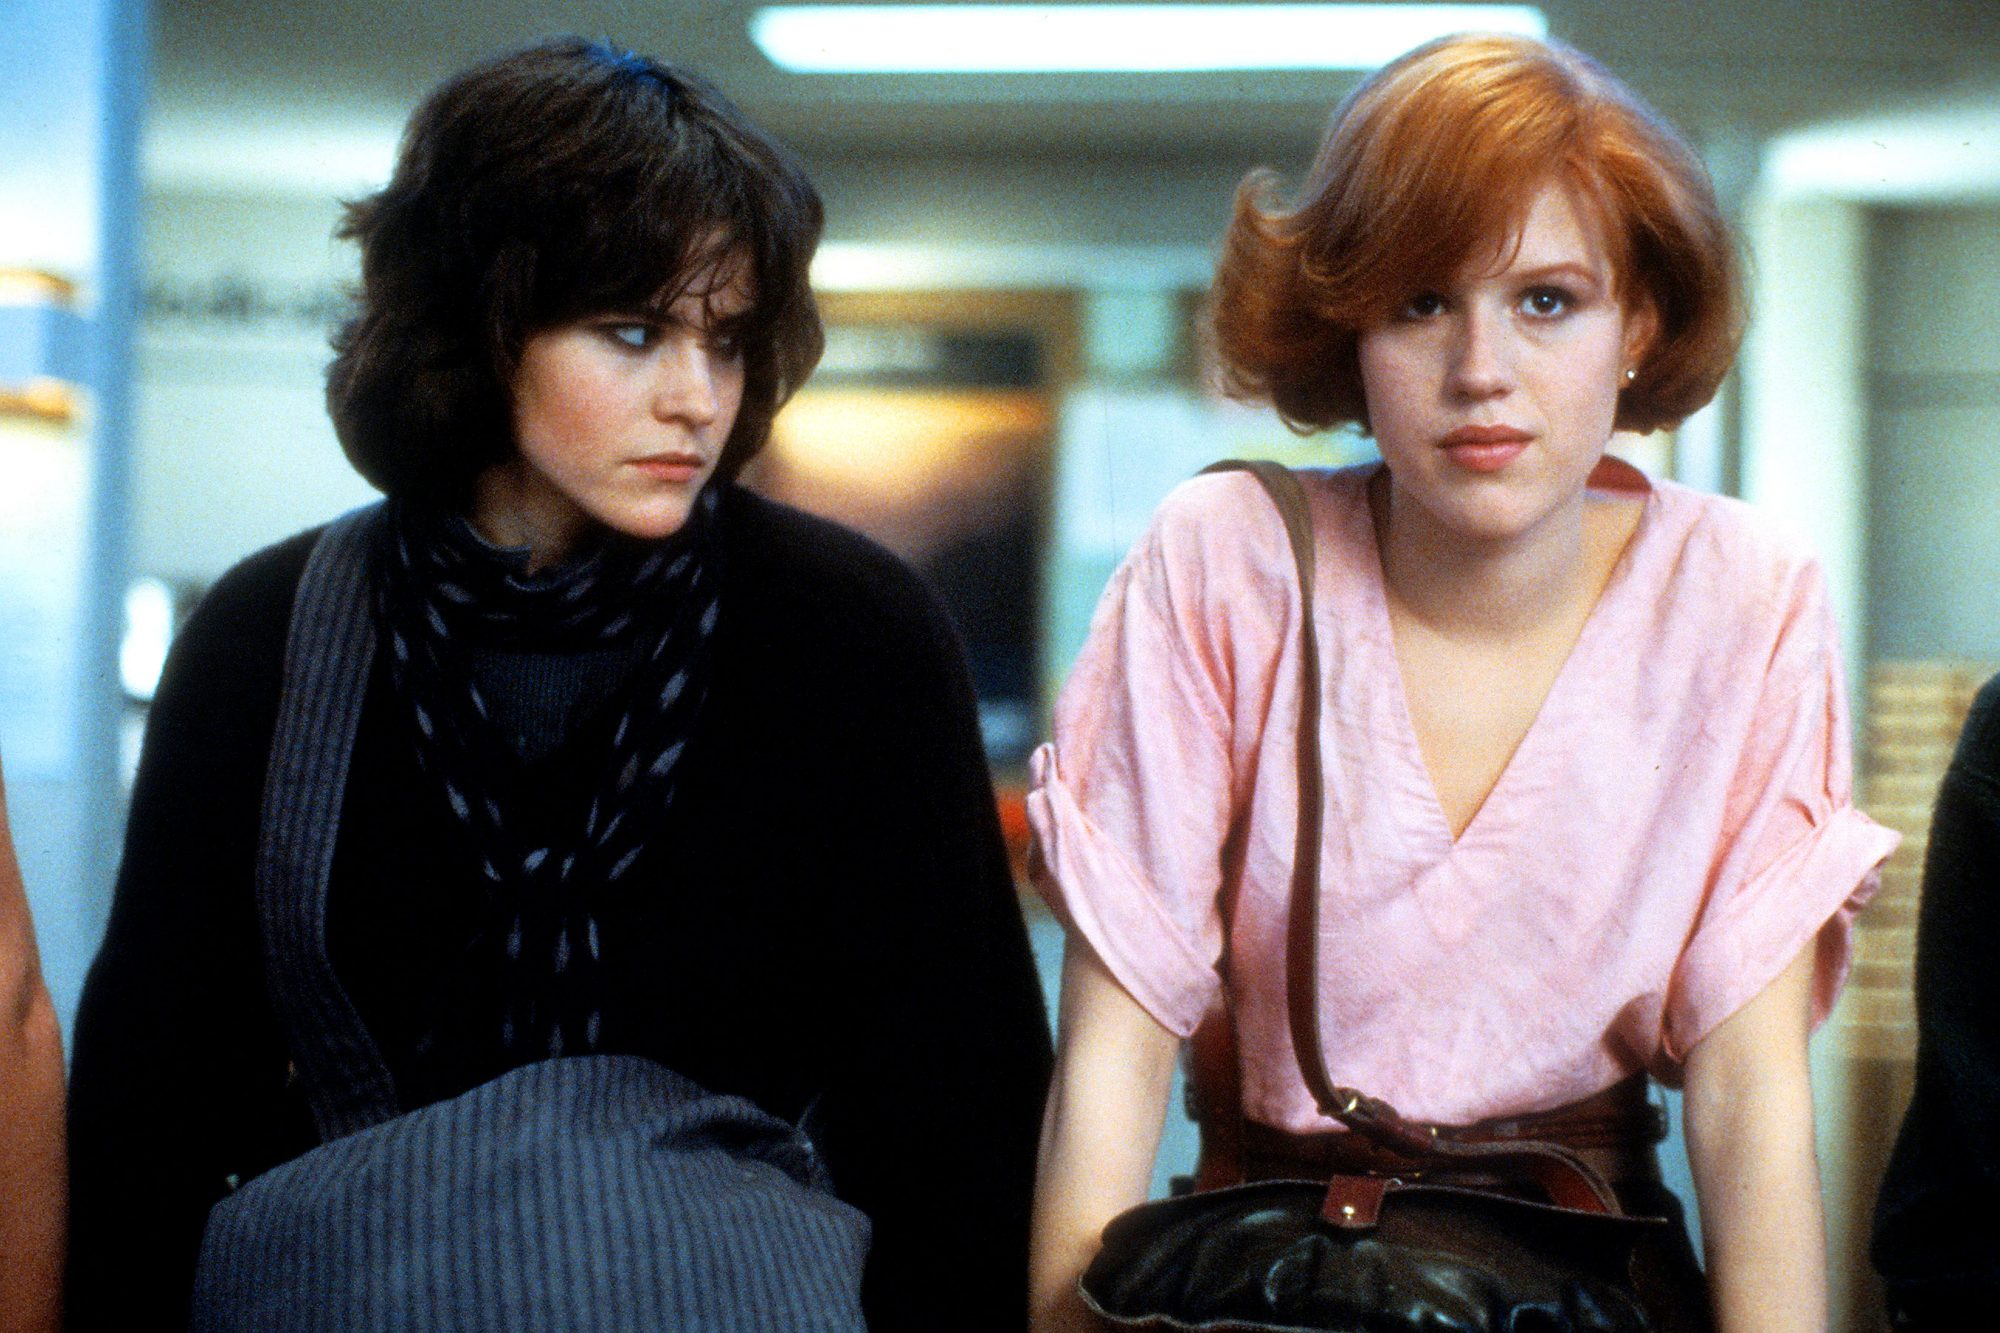 Ally Sheedy And Molly Ringwald In 'The Breakfast Club'